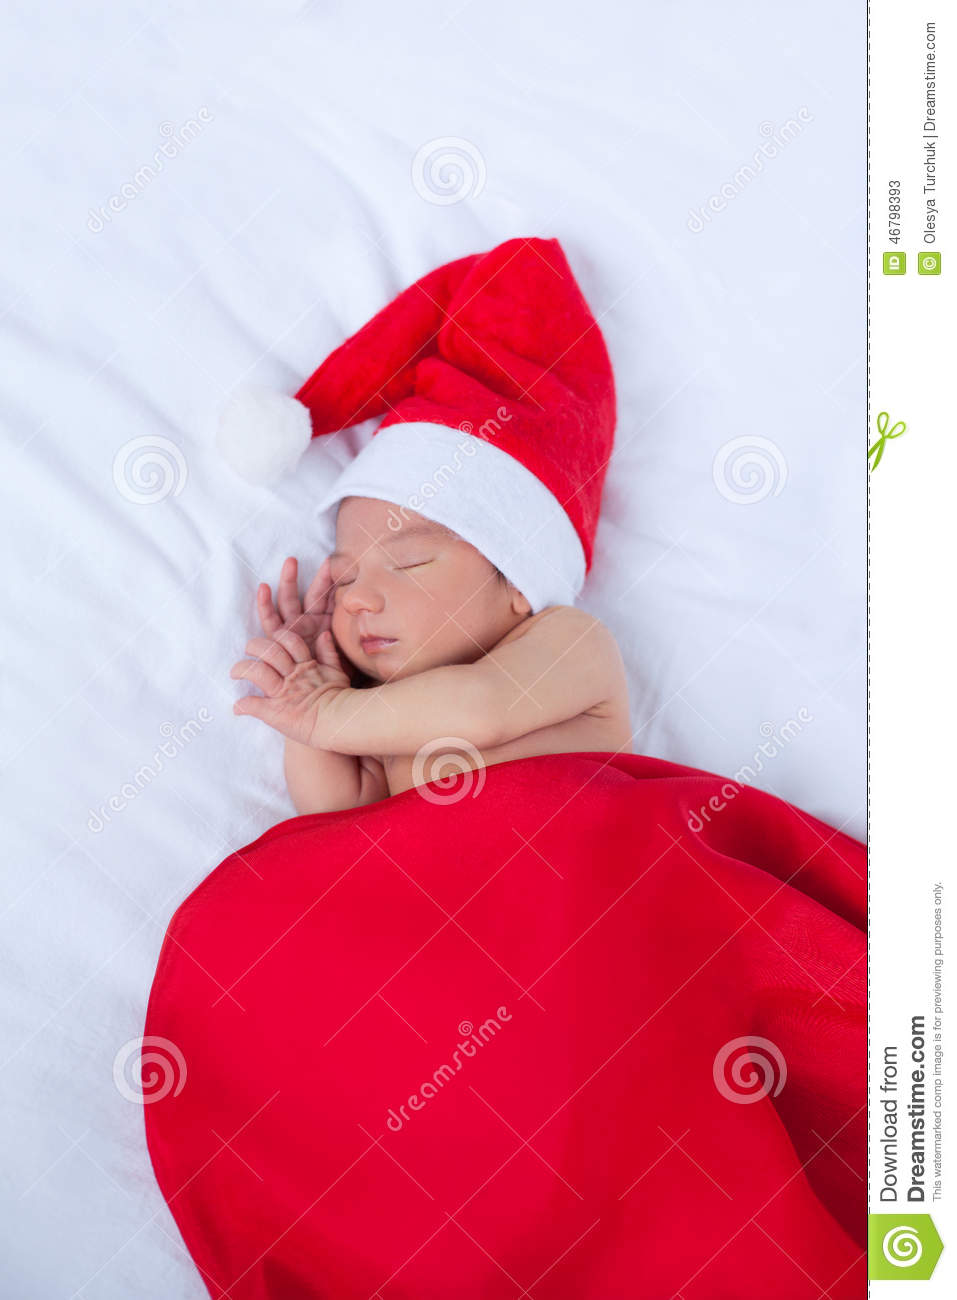 defdc25f71a7f Greeting Card With Newborn Santa Stock Image - Image of beauty ...